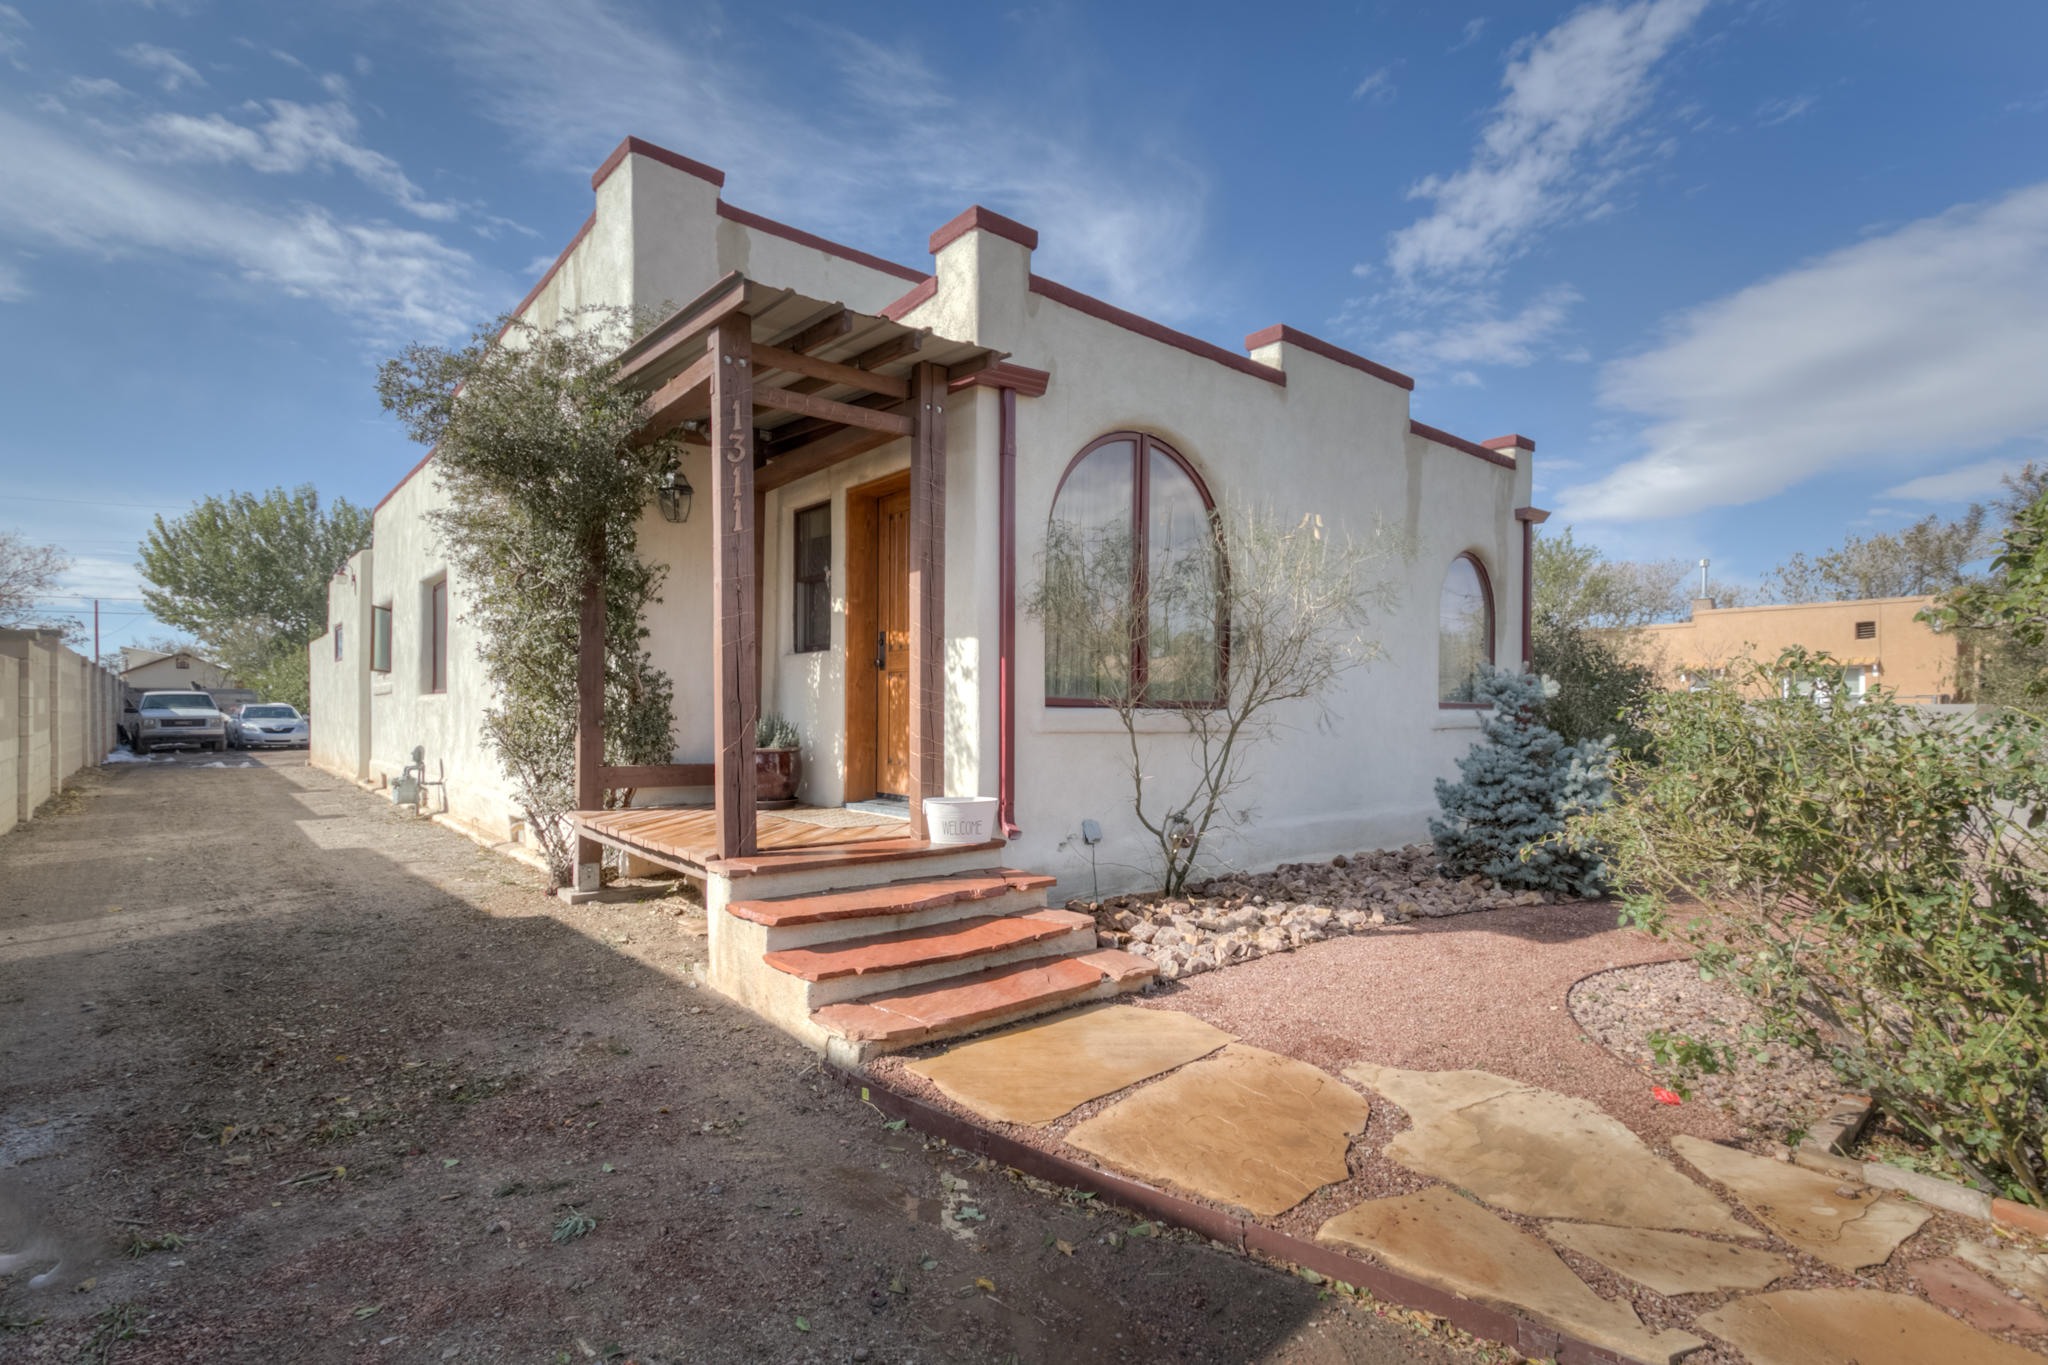 Beautifully updated adobe home in Downtown/Old Town area! Enter through the private front gate, lined with lush rose bushes! The foyer bright and warm... follow the hardwood floors to the open living area where you can cozy up to the wood burning stove. The kitchen is meticulous with custom cherrywood cabinets and granite to match, adorned with a farmhouse sink. There are two bathrooms and 2 bedrooms or utilize one for a home office. The back deck is great for entertaining and backyard is private and spacious and ready for your finishing touches.Location, location, location - close to Old Town, shopping, restaurants, and all the Sawmill district has to offer. Also easy access to I40.